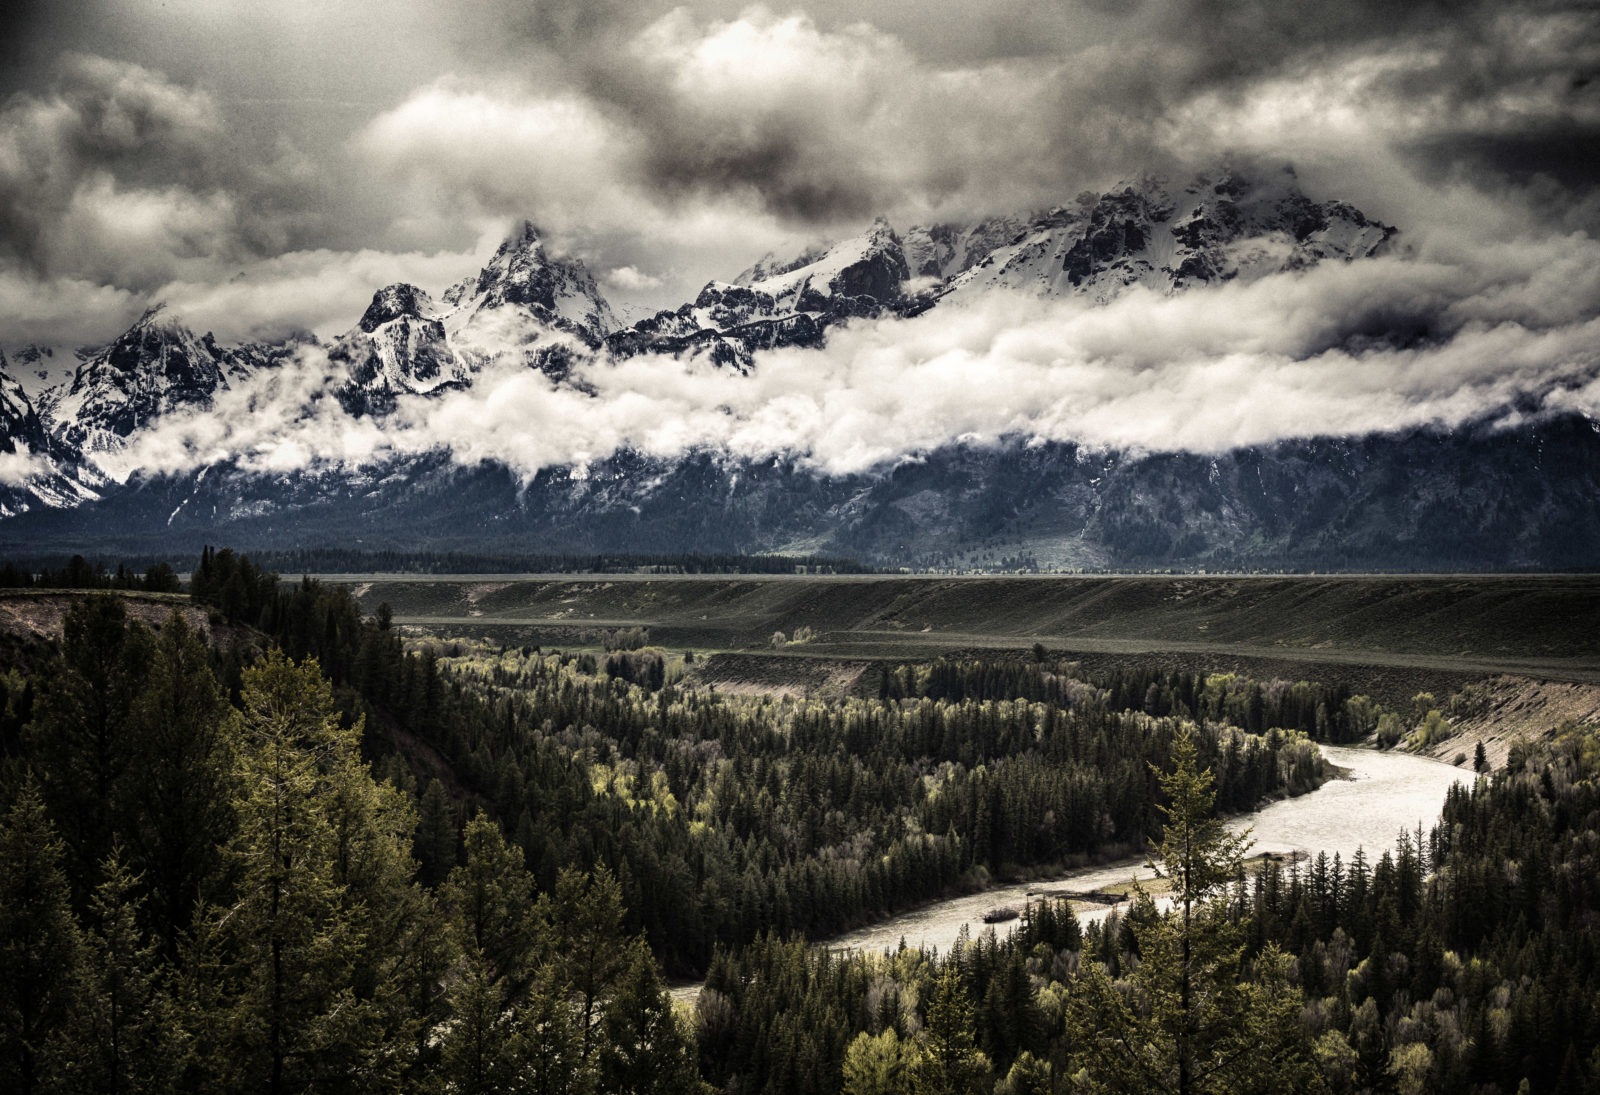 These Tetons